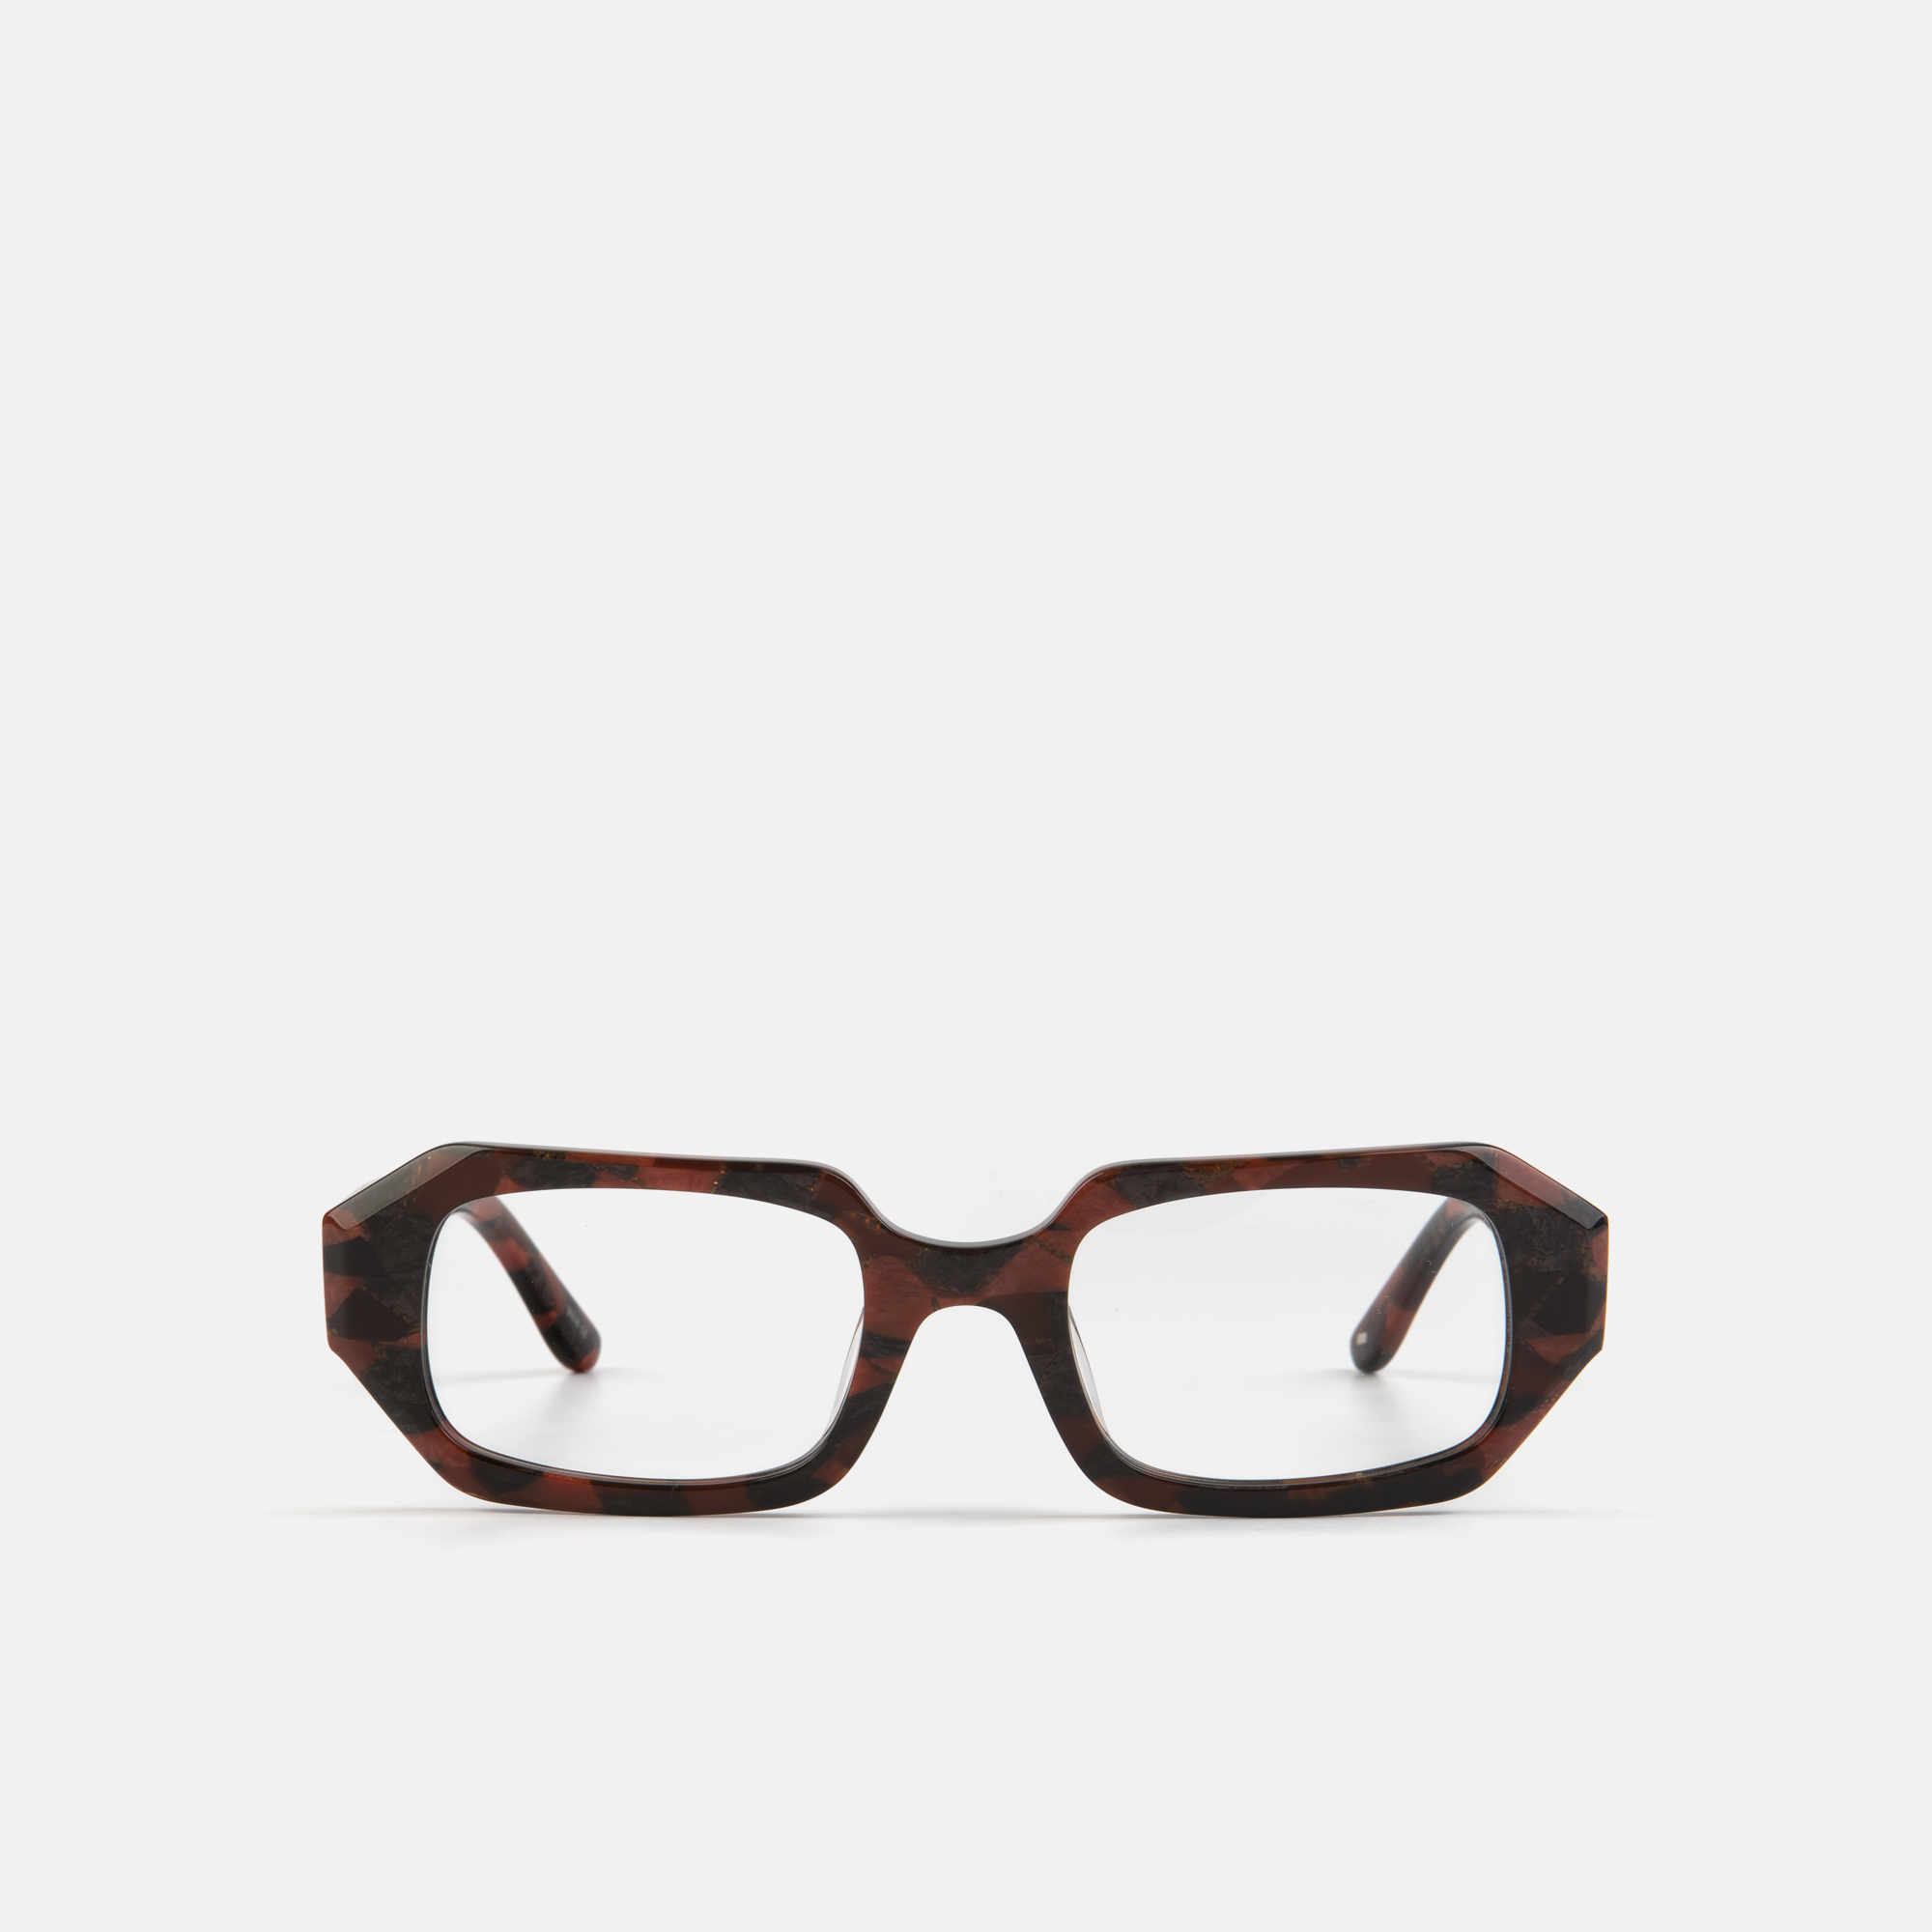 mó geek 92A B, pattern red-black, hi-res